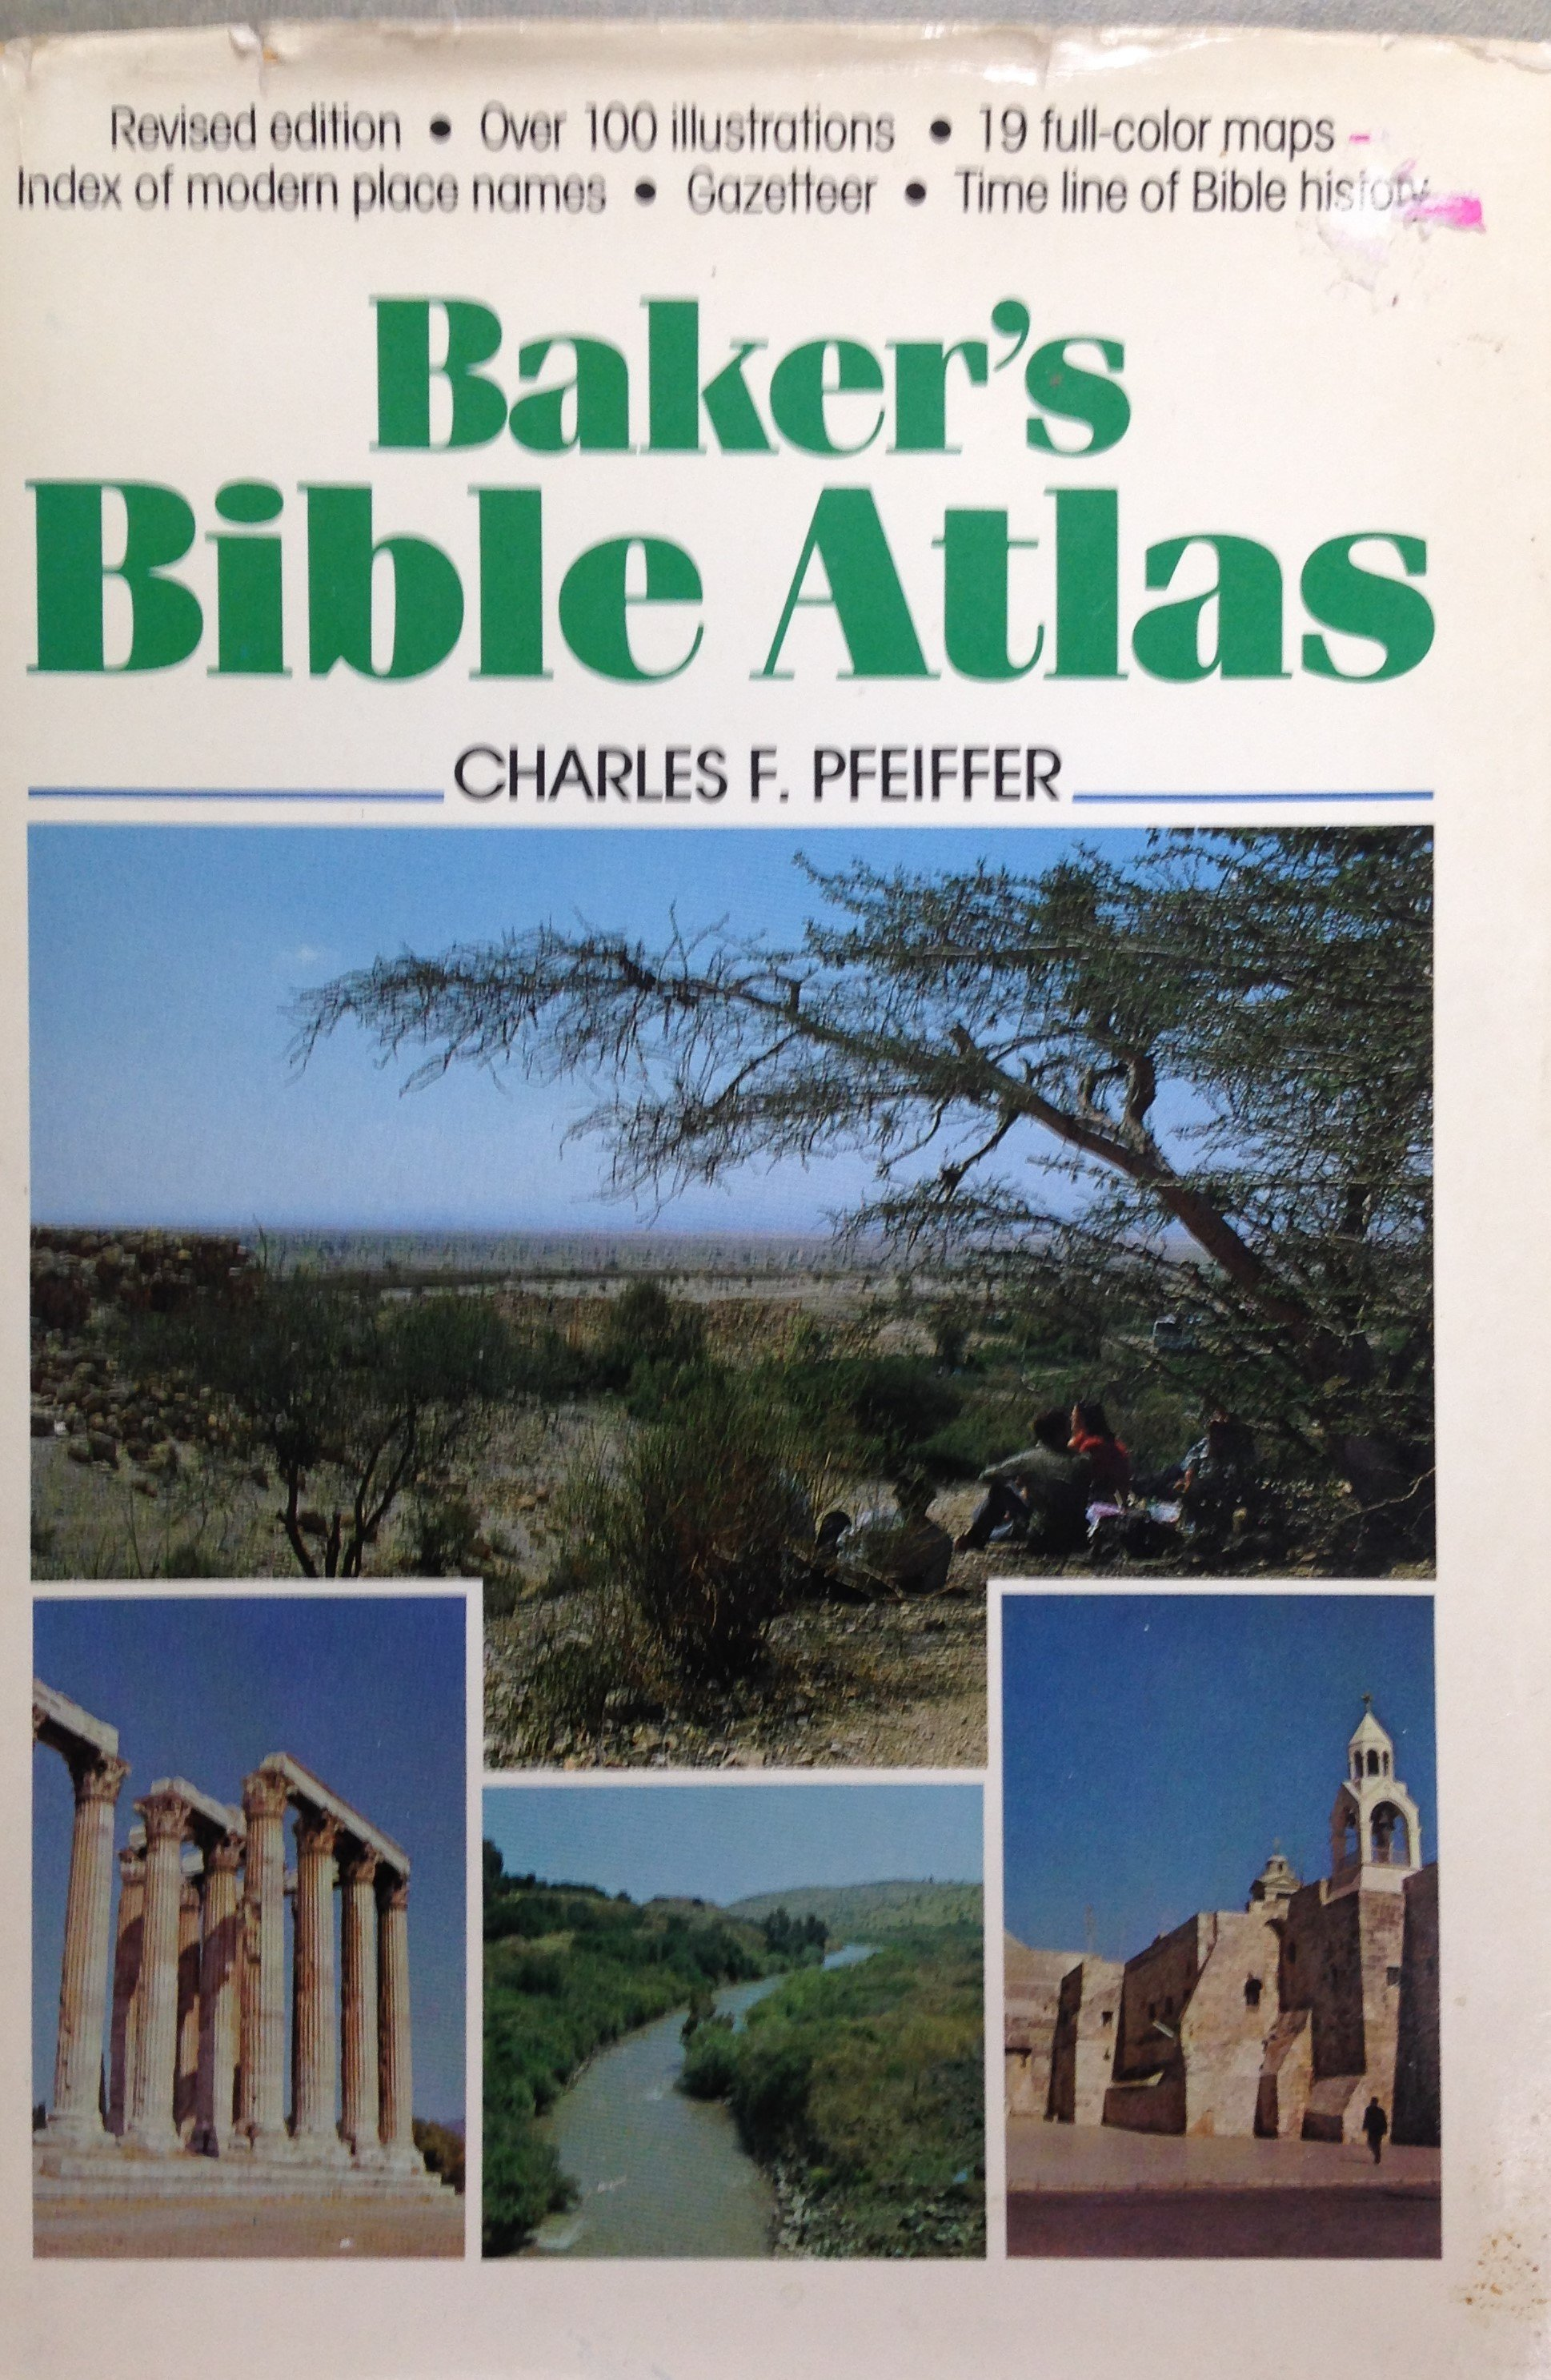 Baker's Bible Atlas by Charles F. Pfeiffer  (USED) 00092